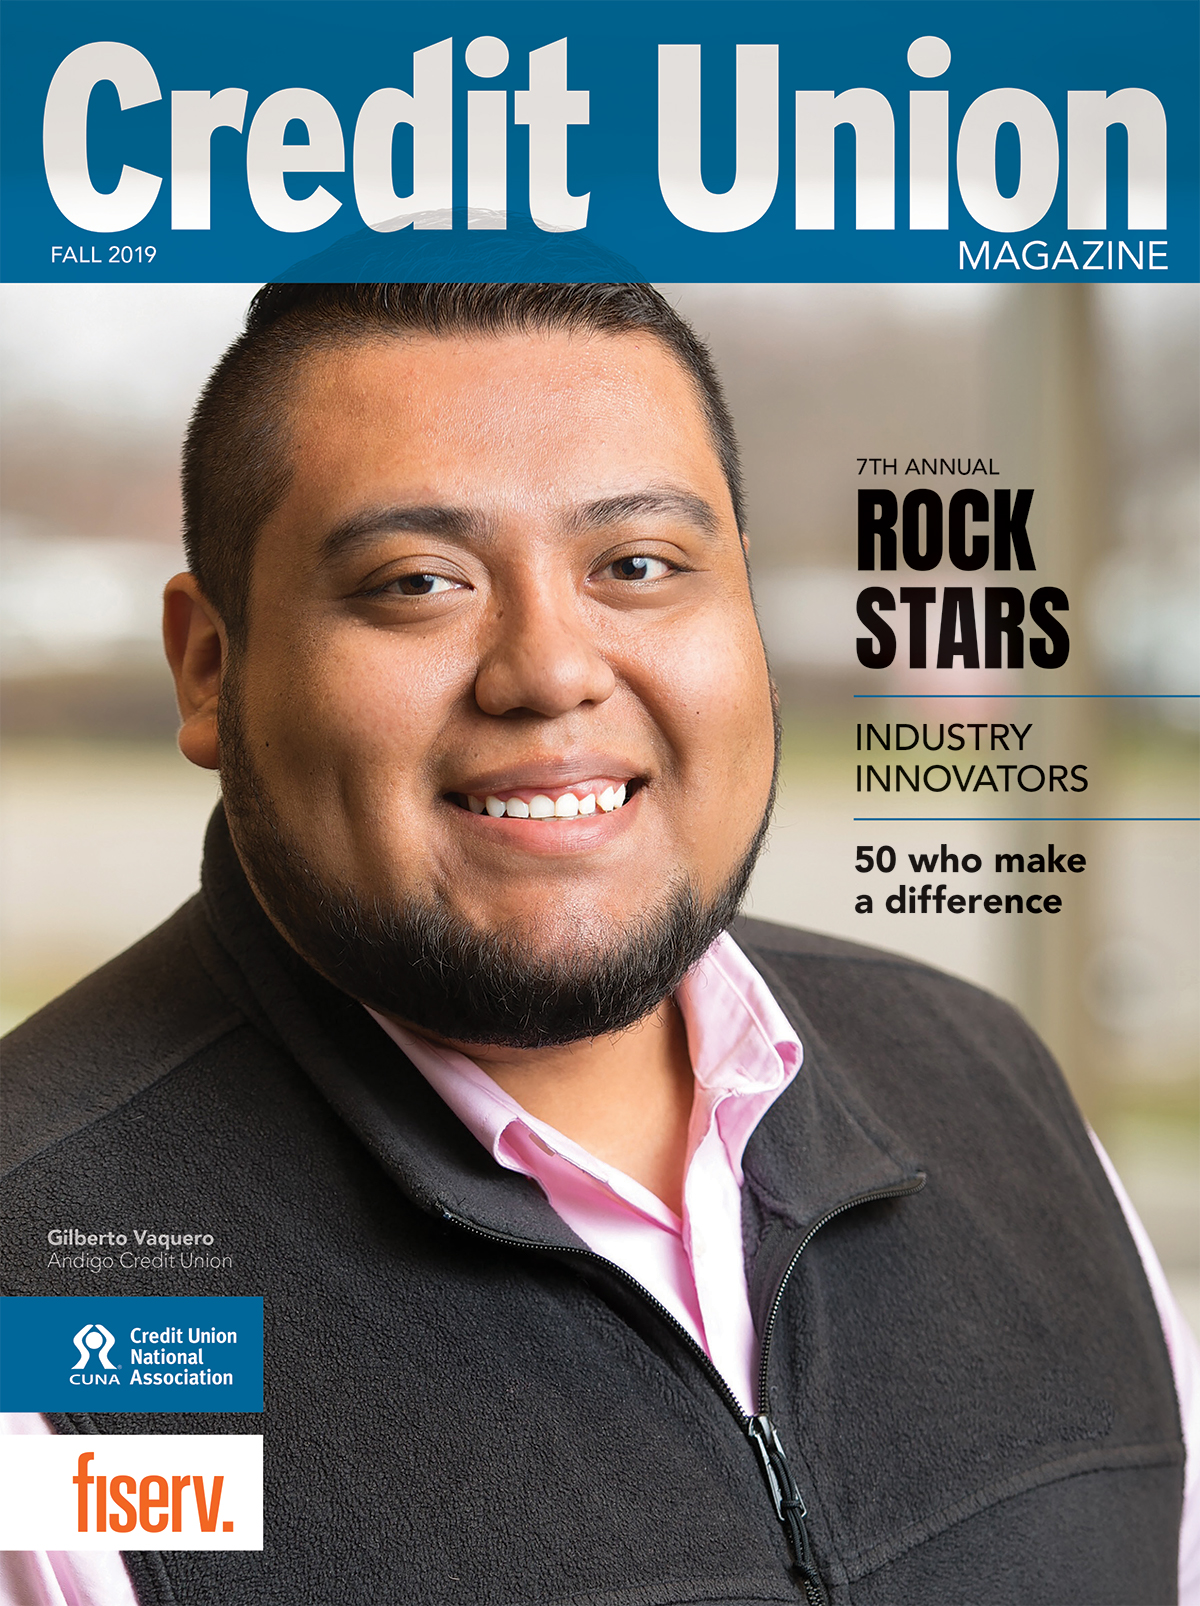 Credit Union Magazine - Fall 2019